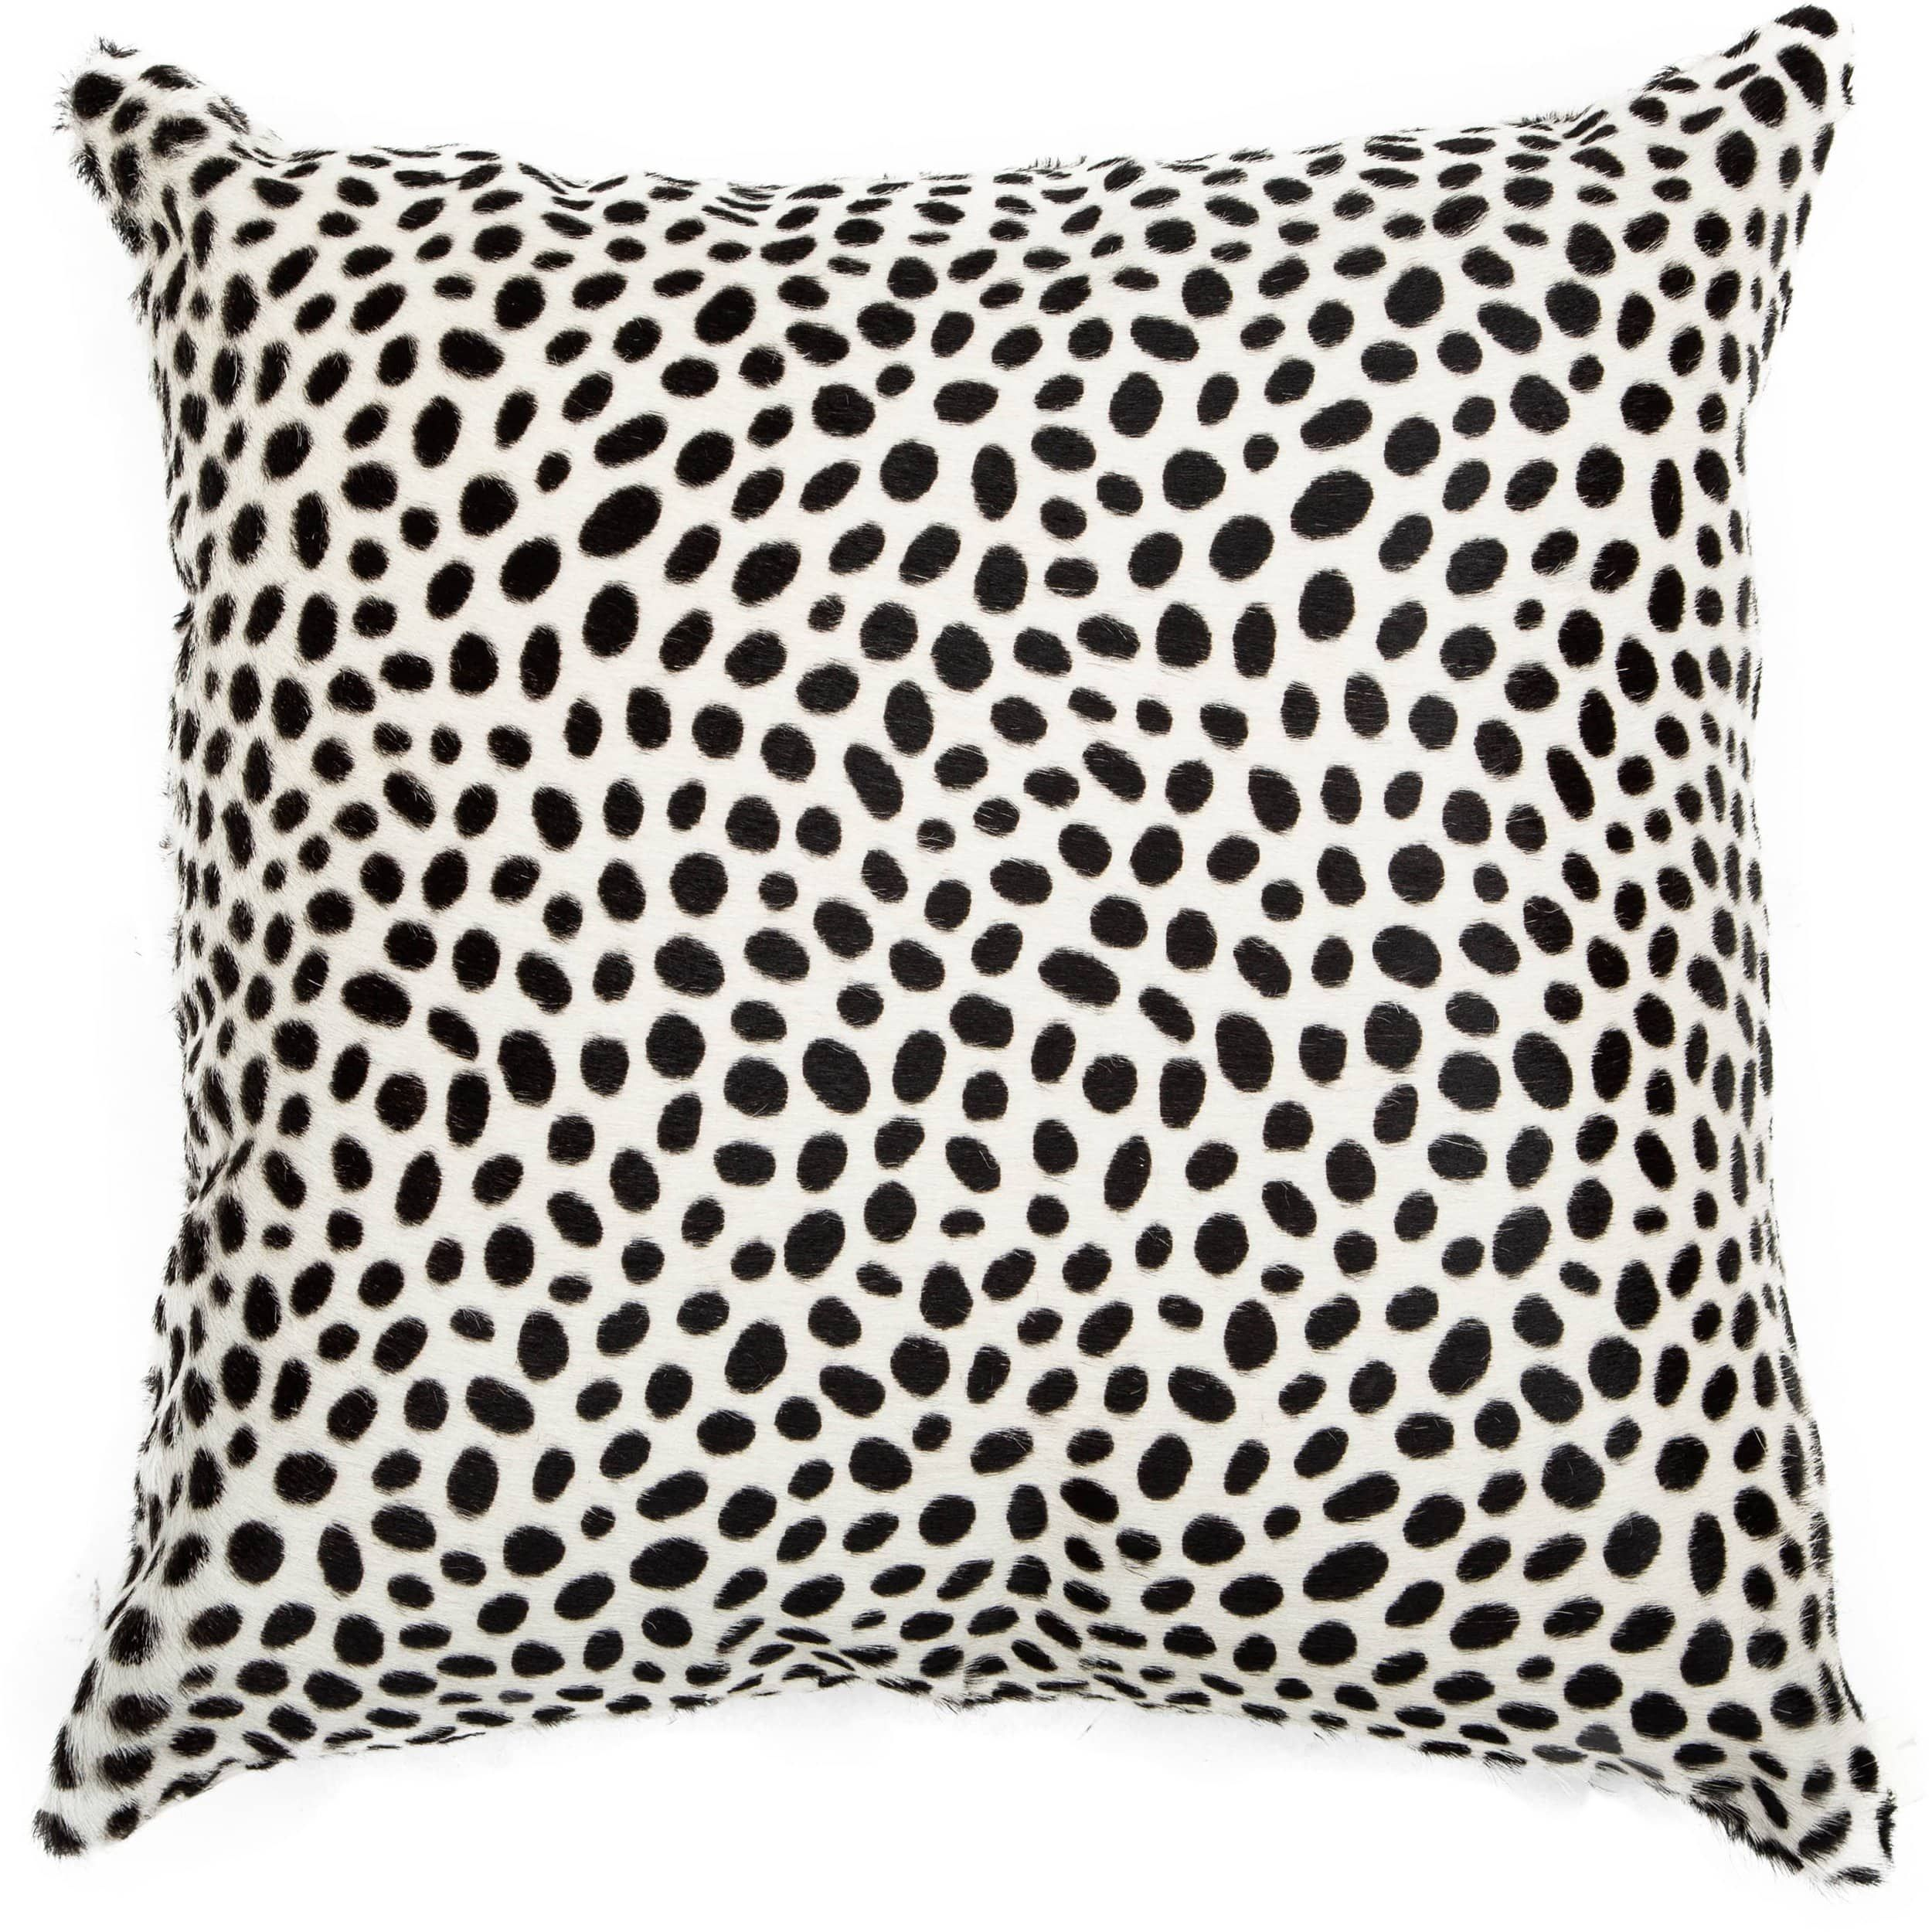 td {border: 1px solid #ccc;}br {mso-data-placement:same-cell;} The Cheetah on White Hide Pillow adds eyecatching style and texture to a setting.